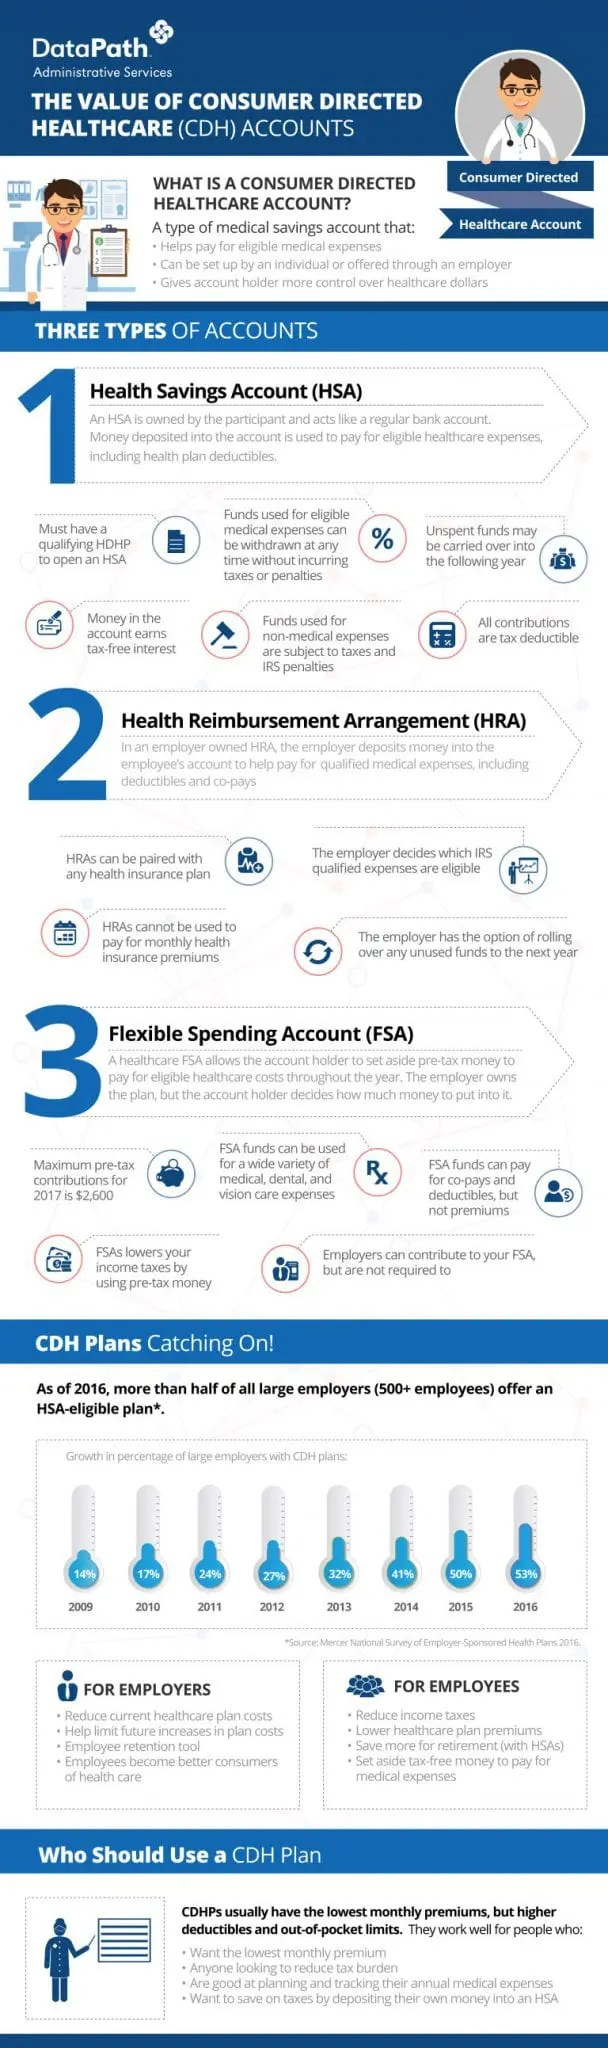 Consumer directed healthcare accounts